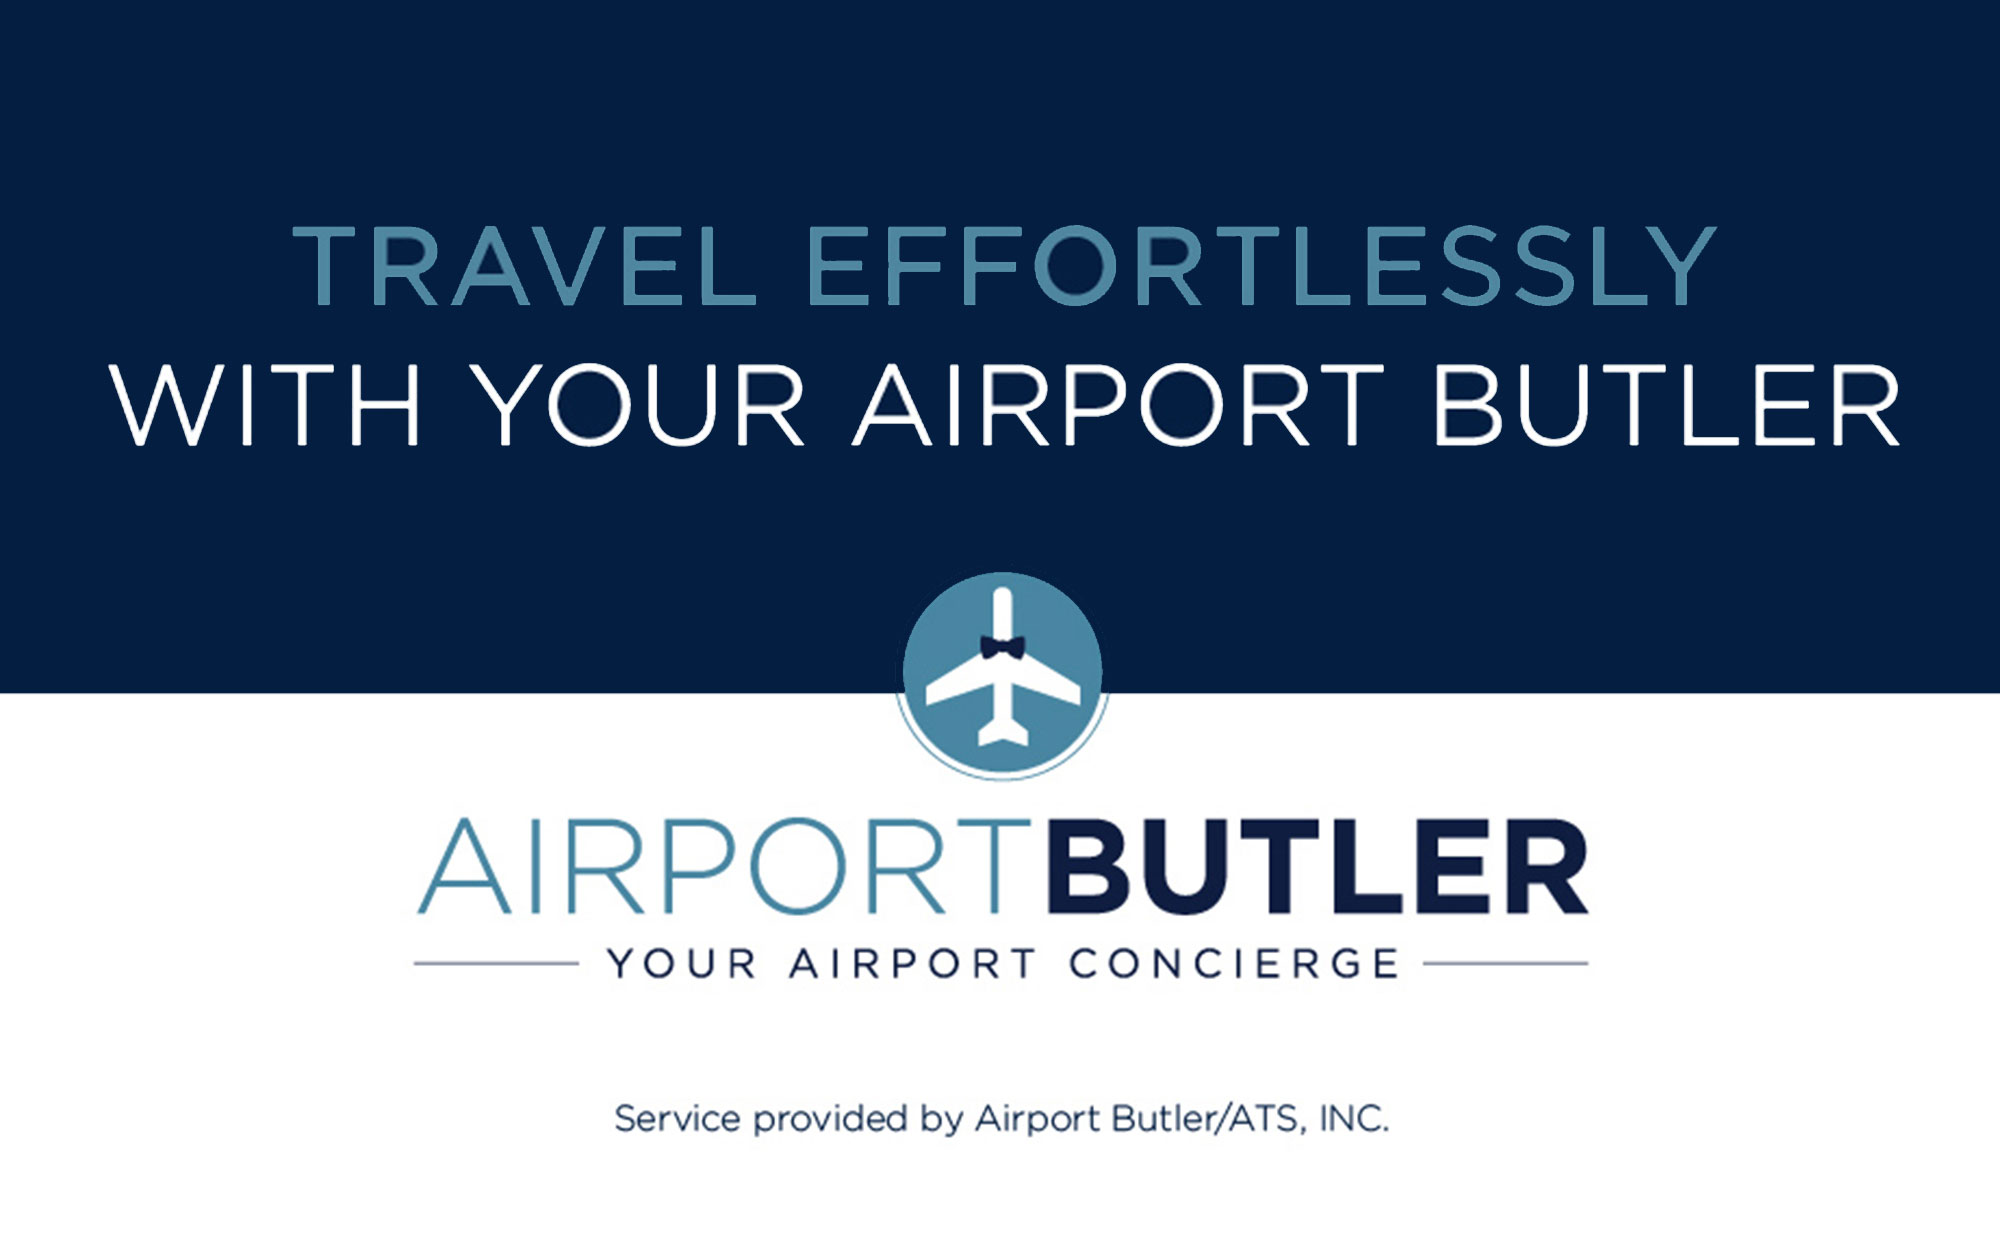 Why You Might Consider an Airport Butler